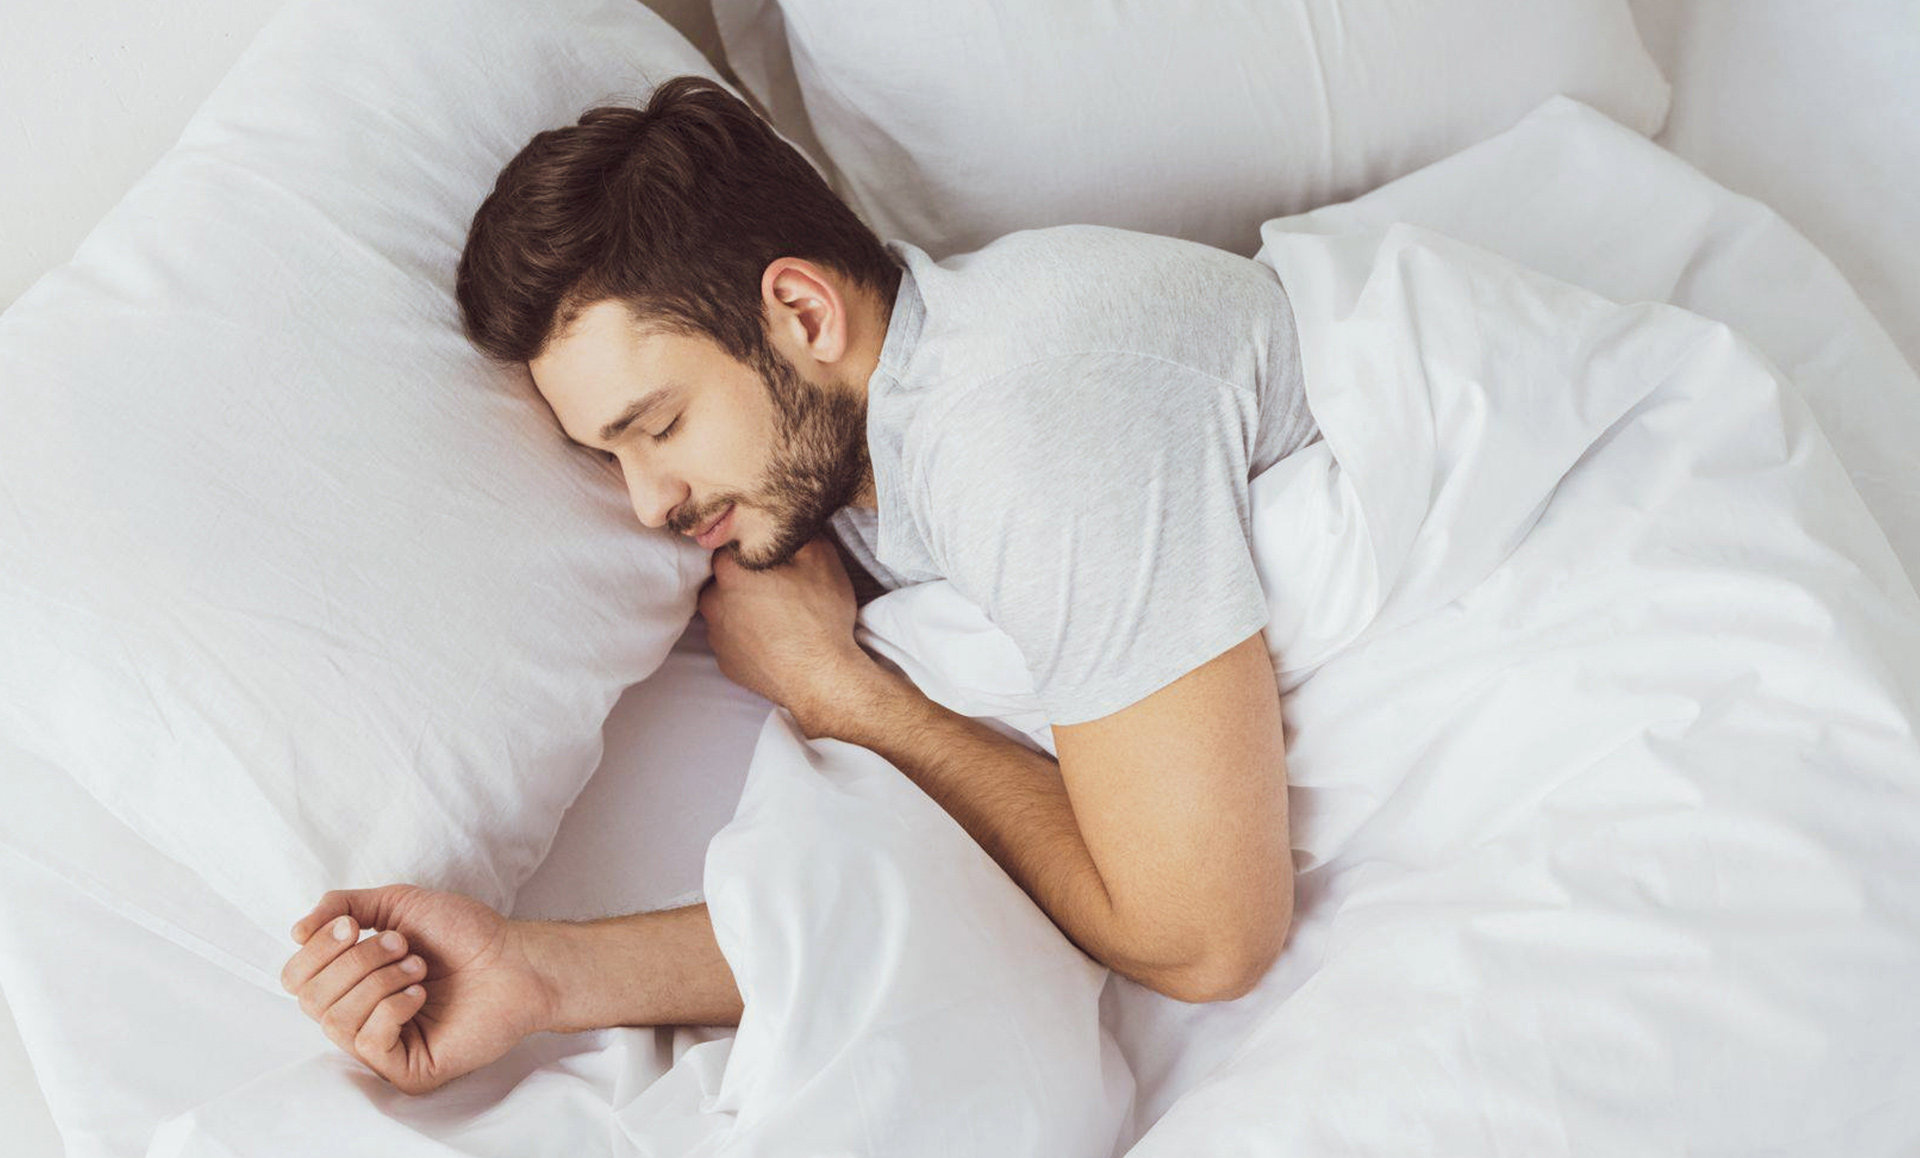 retail marketing for furniture company man sleeping in bed